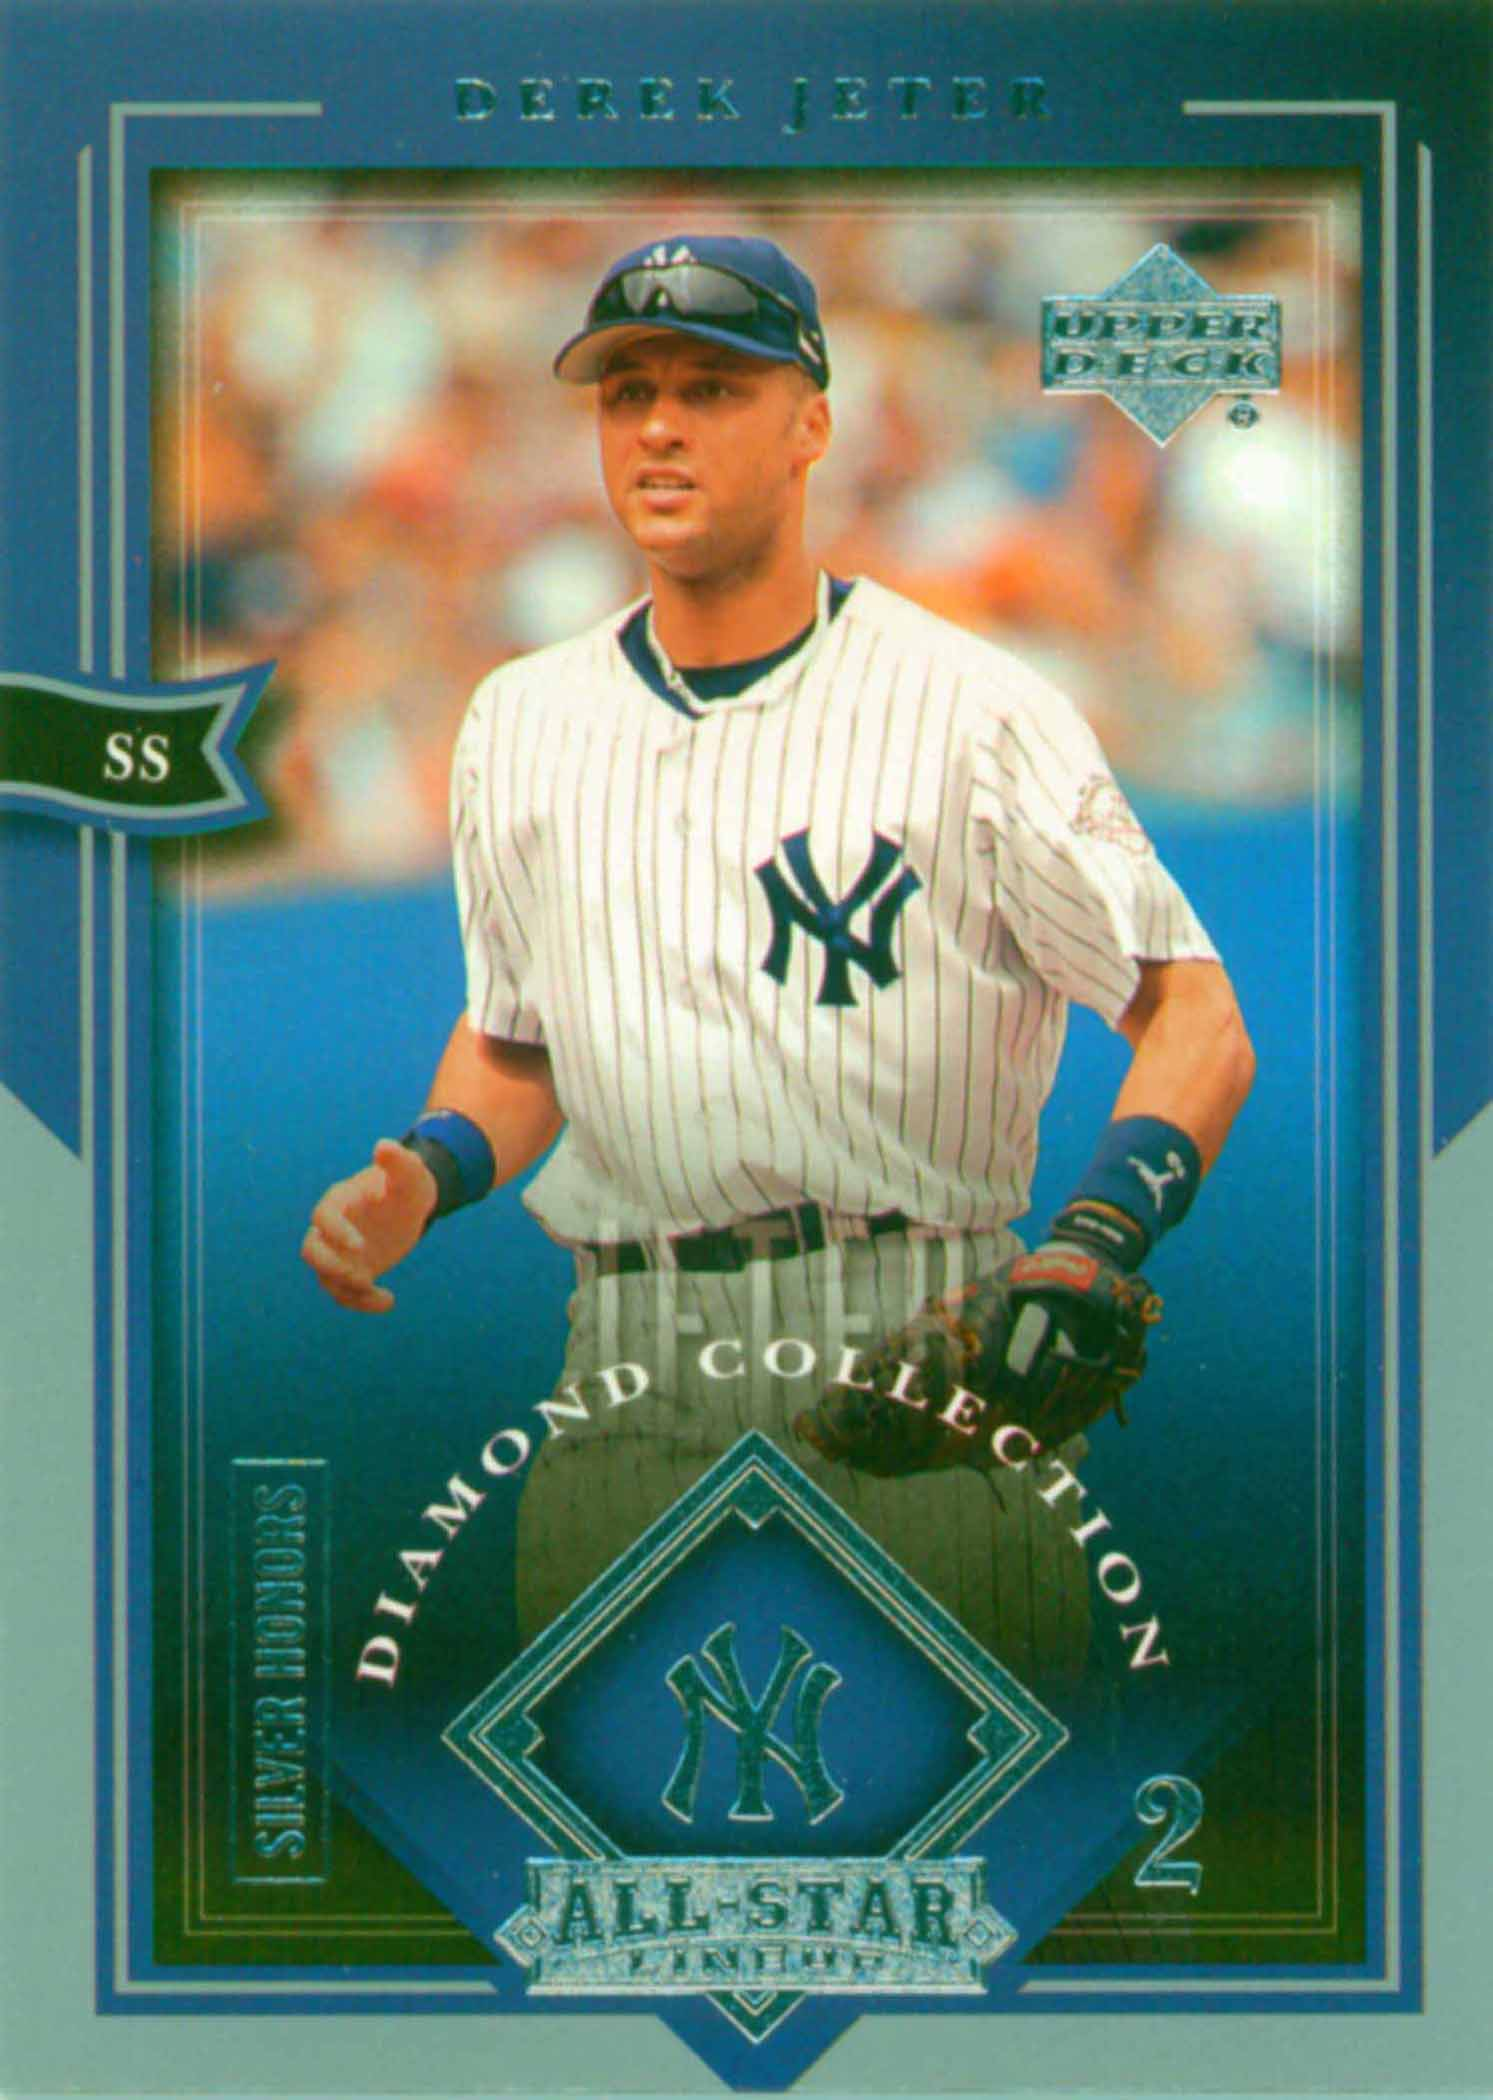 2004 UD Diamond All-Star Silver Honors